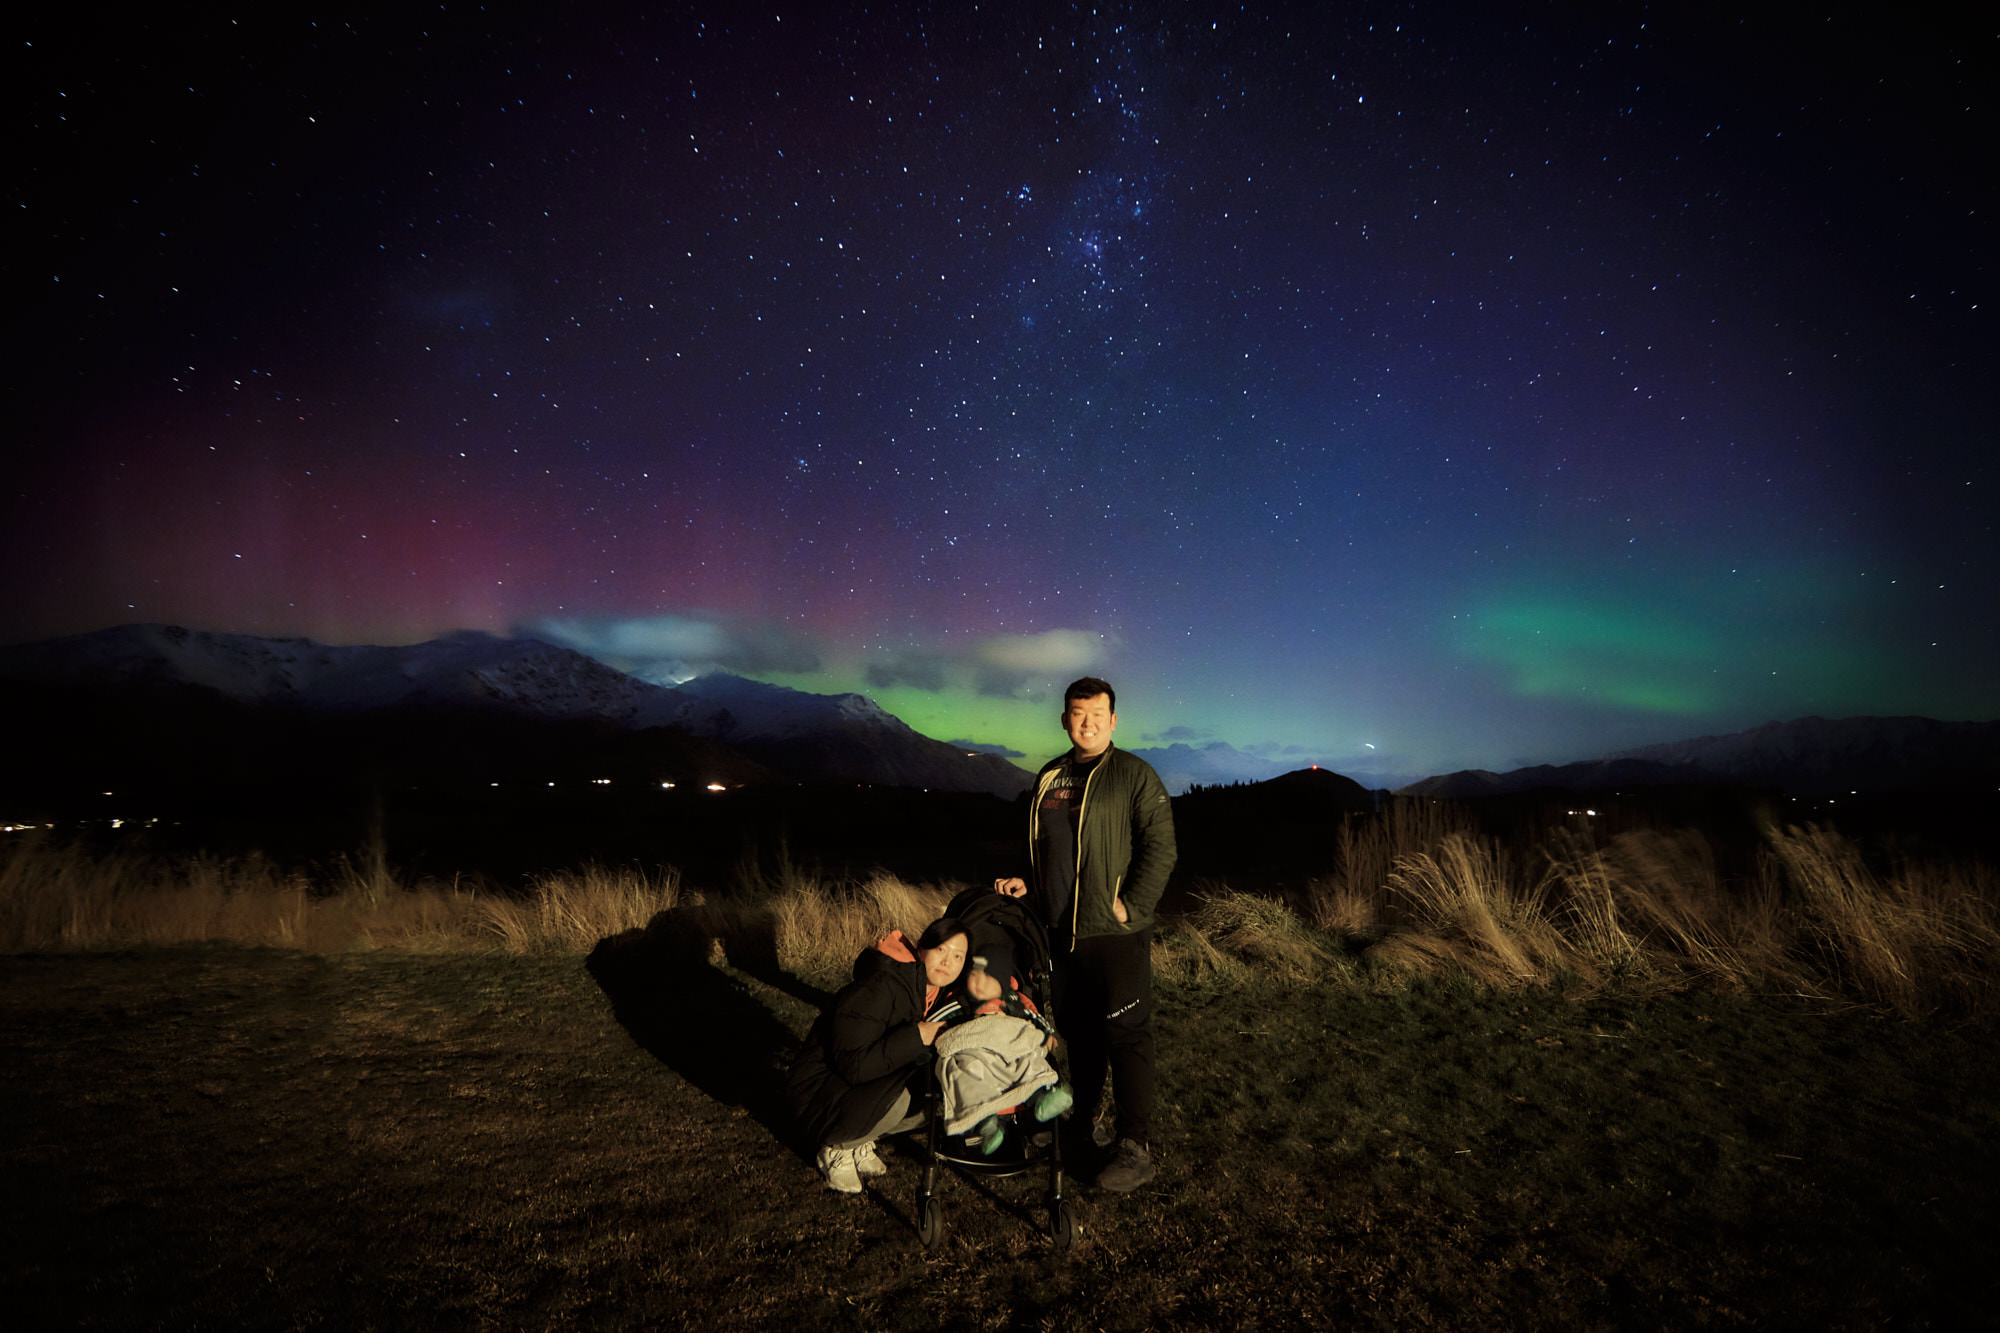 Backyard family selfie on a night with an aurora.